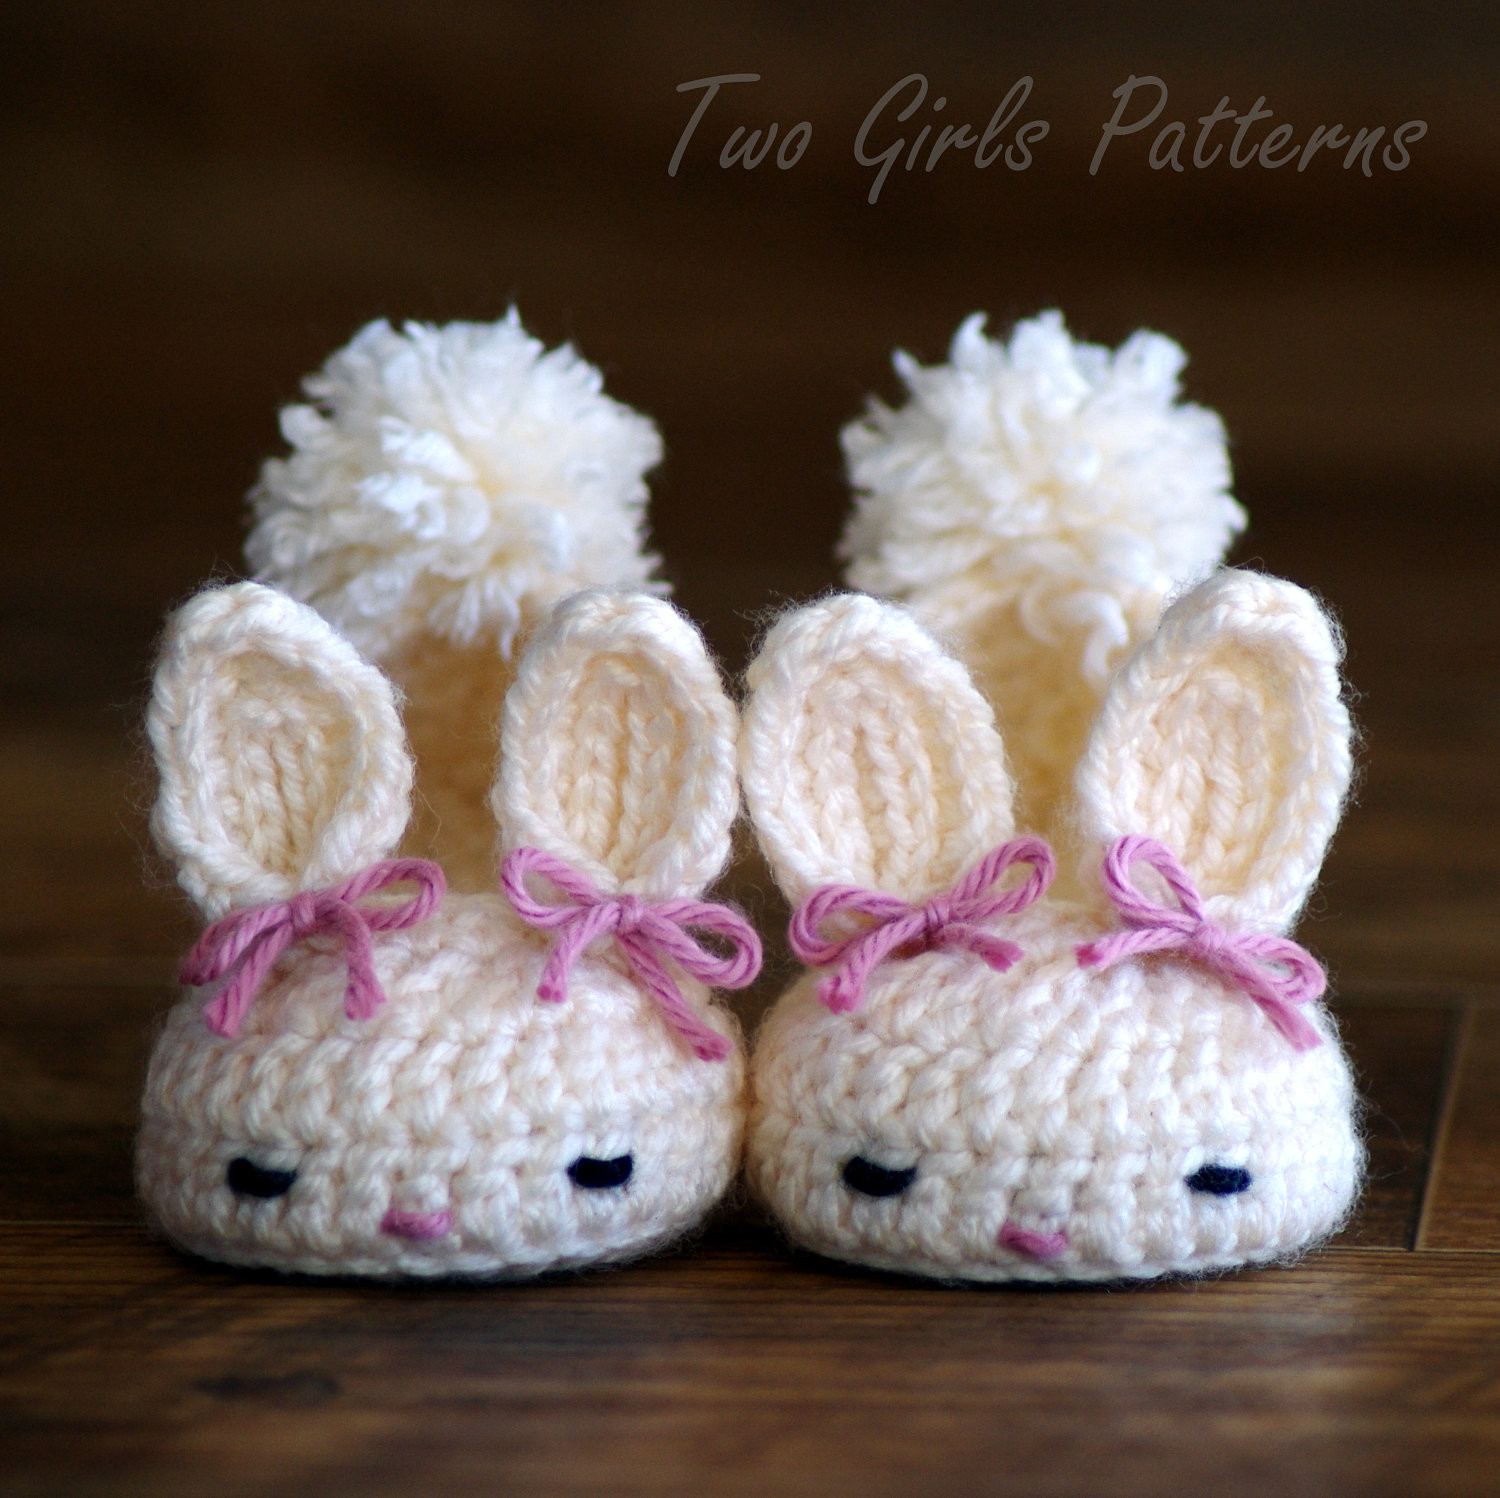 Crochet Baby Shoes Fresh Crochet Patterns Baby Booties Bunny Of Delightful 42 Models Crochet Baby Shoes